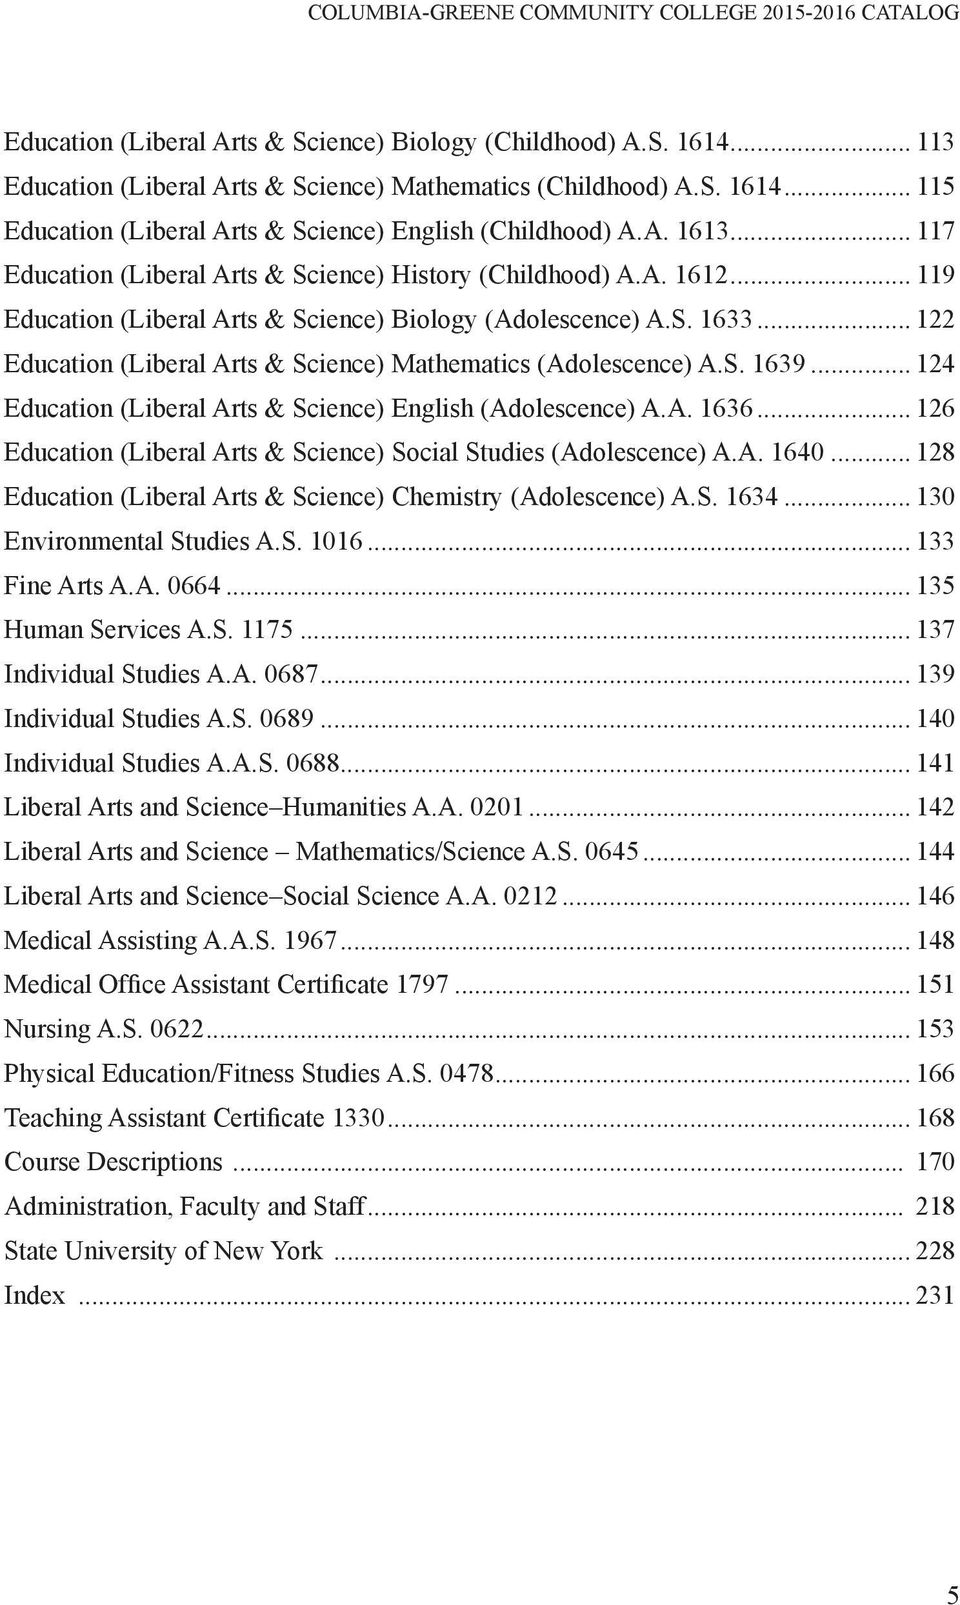 .. 122 Education (Liberal Arts & Science) Mathematics (Adolescence) A.S. 1639... 124 Education (Liberal Arts & Science) English (Adolescence) A.A. 1636.